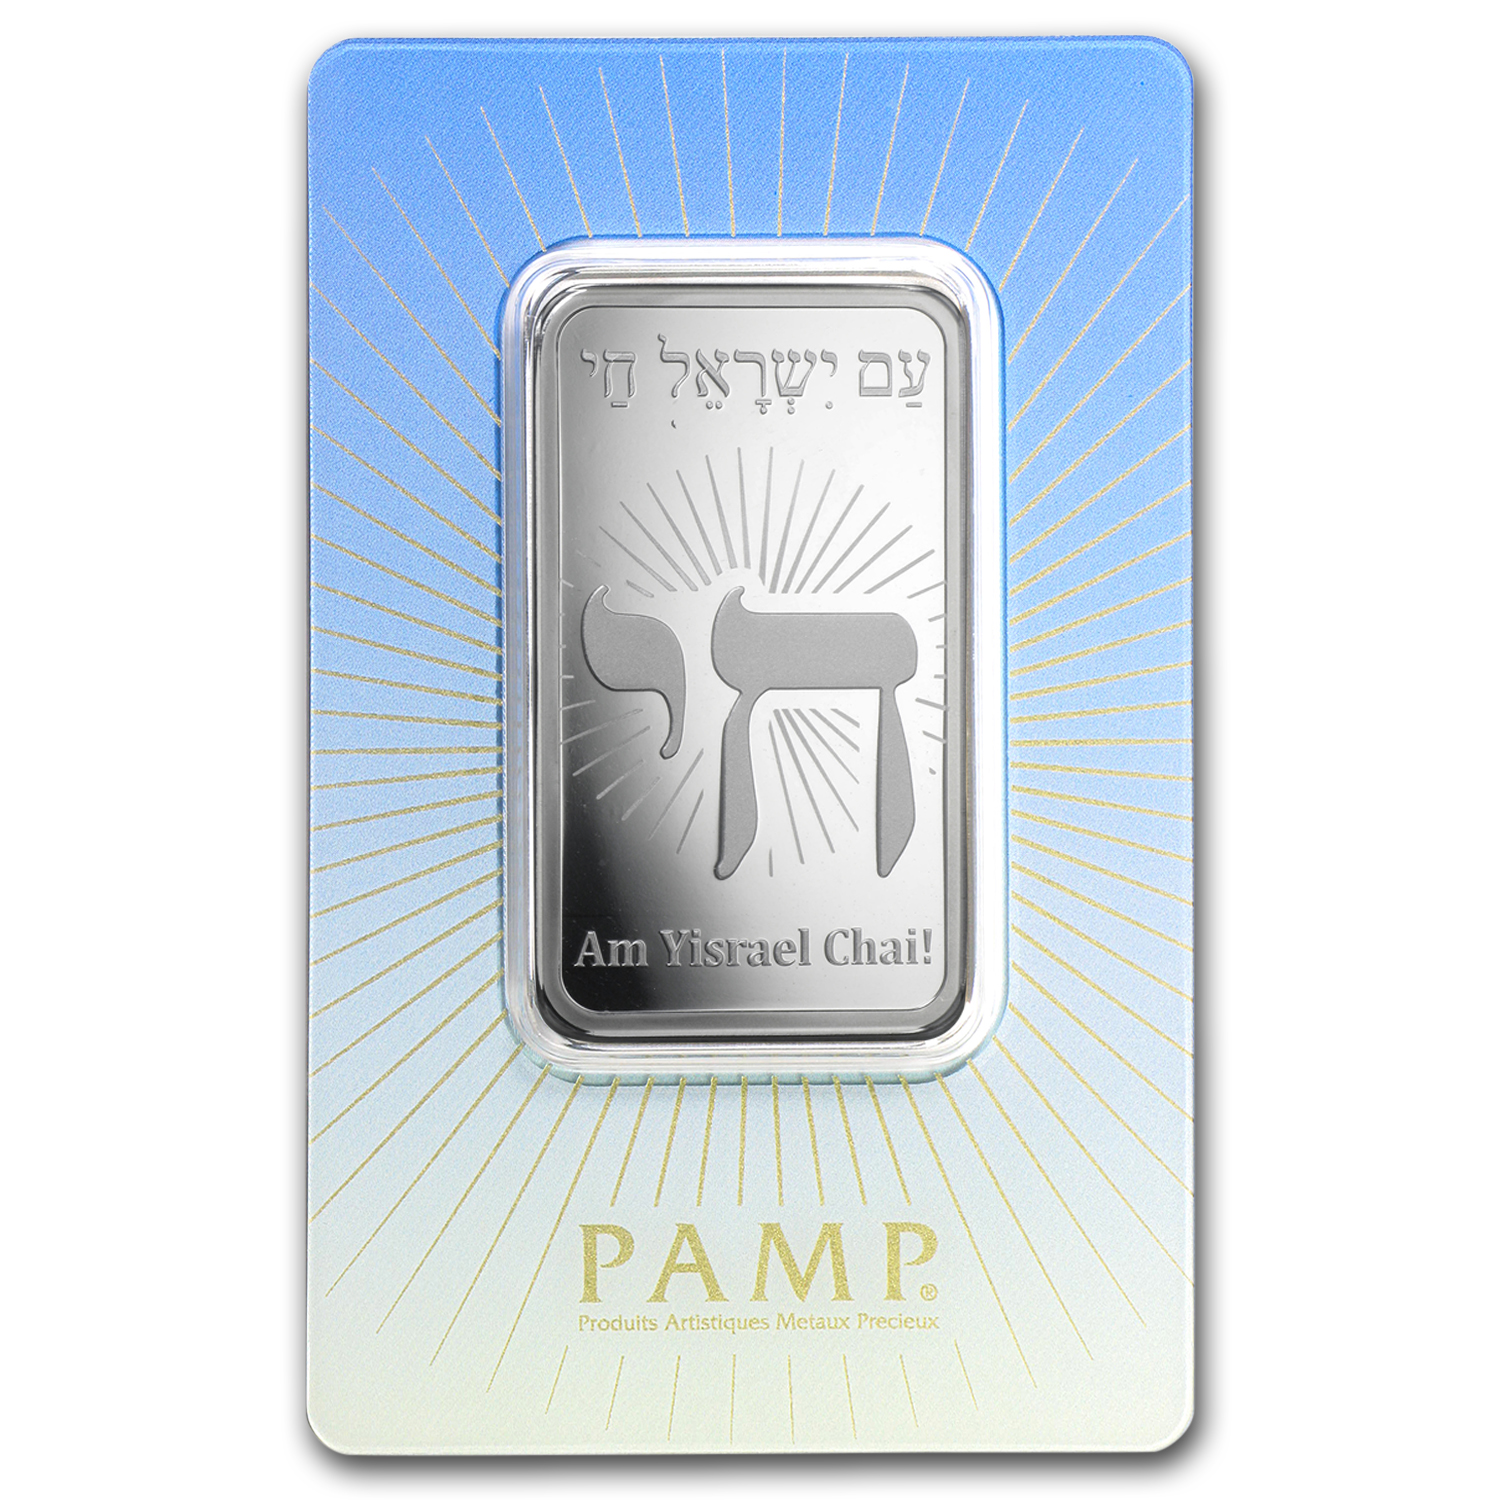 1 oz Silver Bar - PAMP Suisse Religious Series (Am Yisrael Chai!)